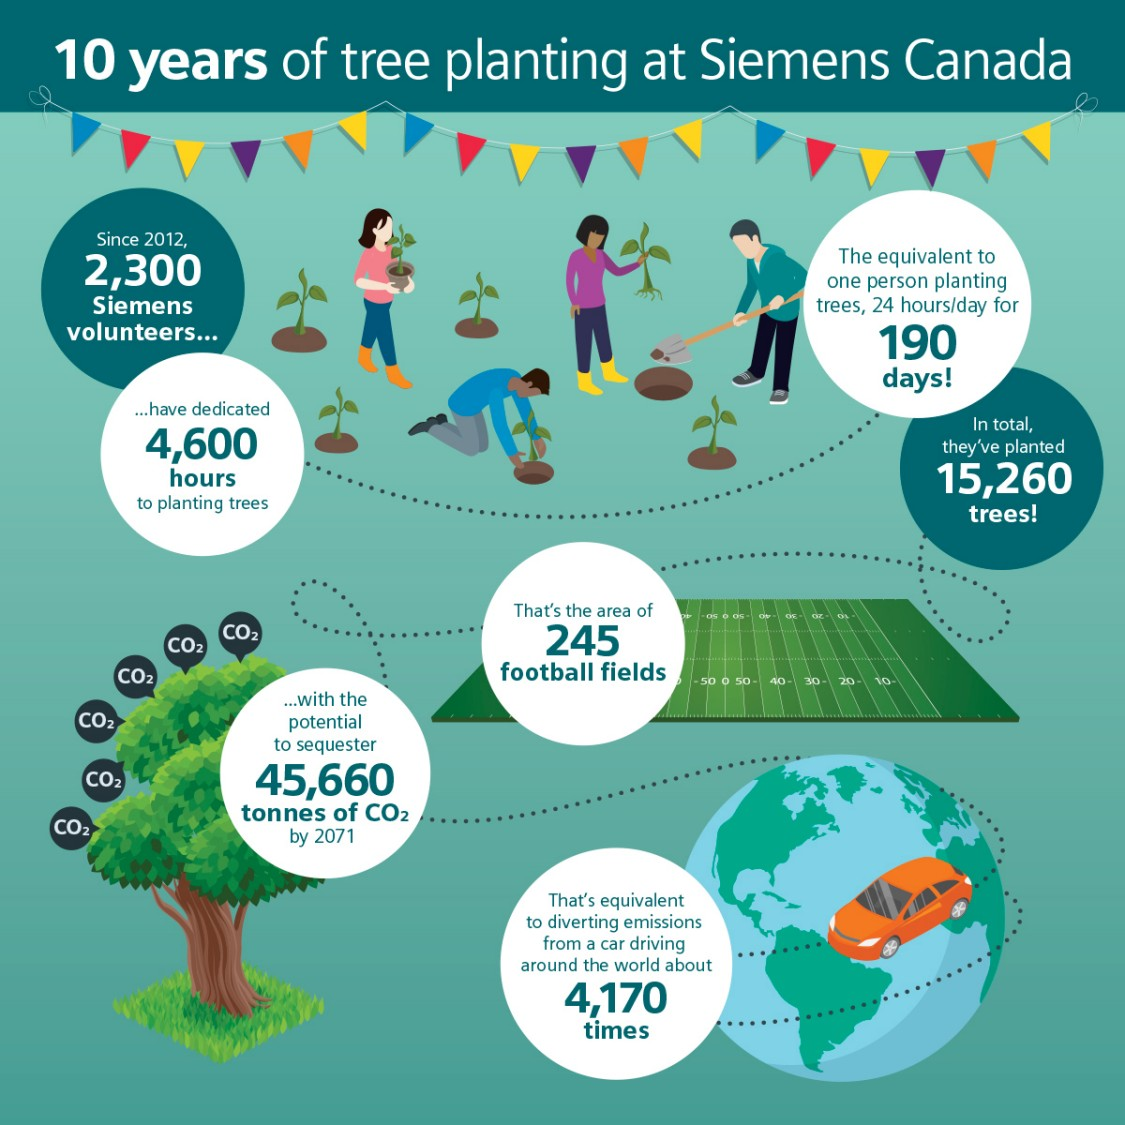 Tree planting at Siemens Canada infographic